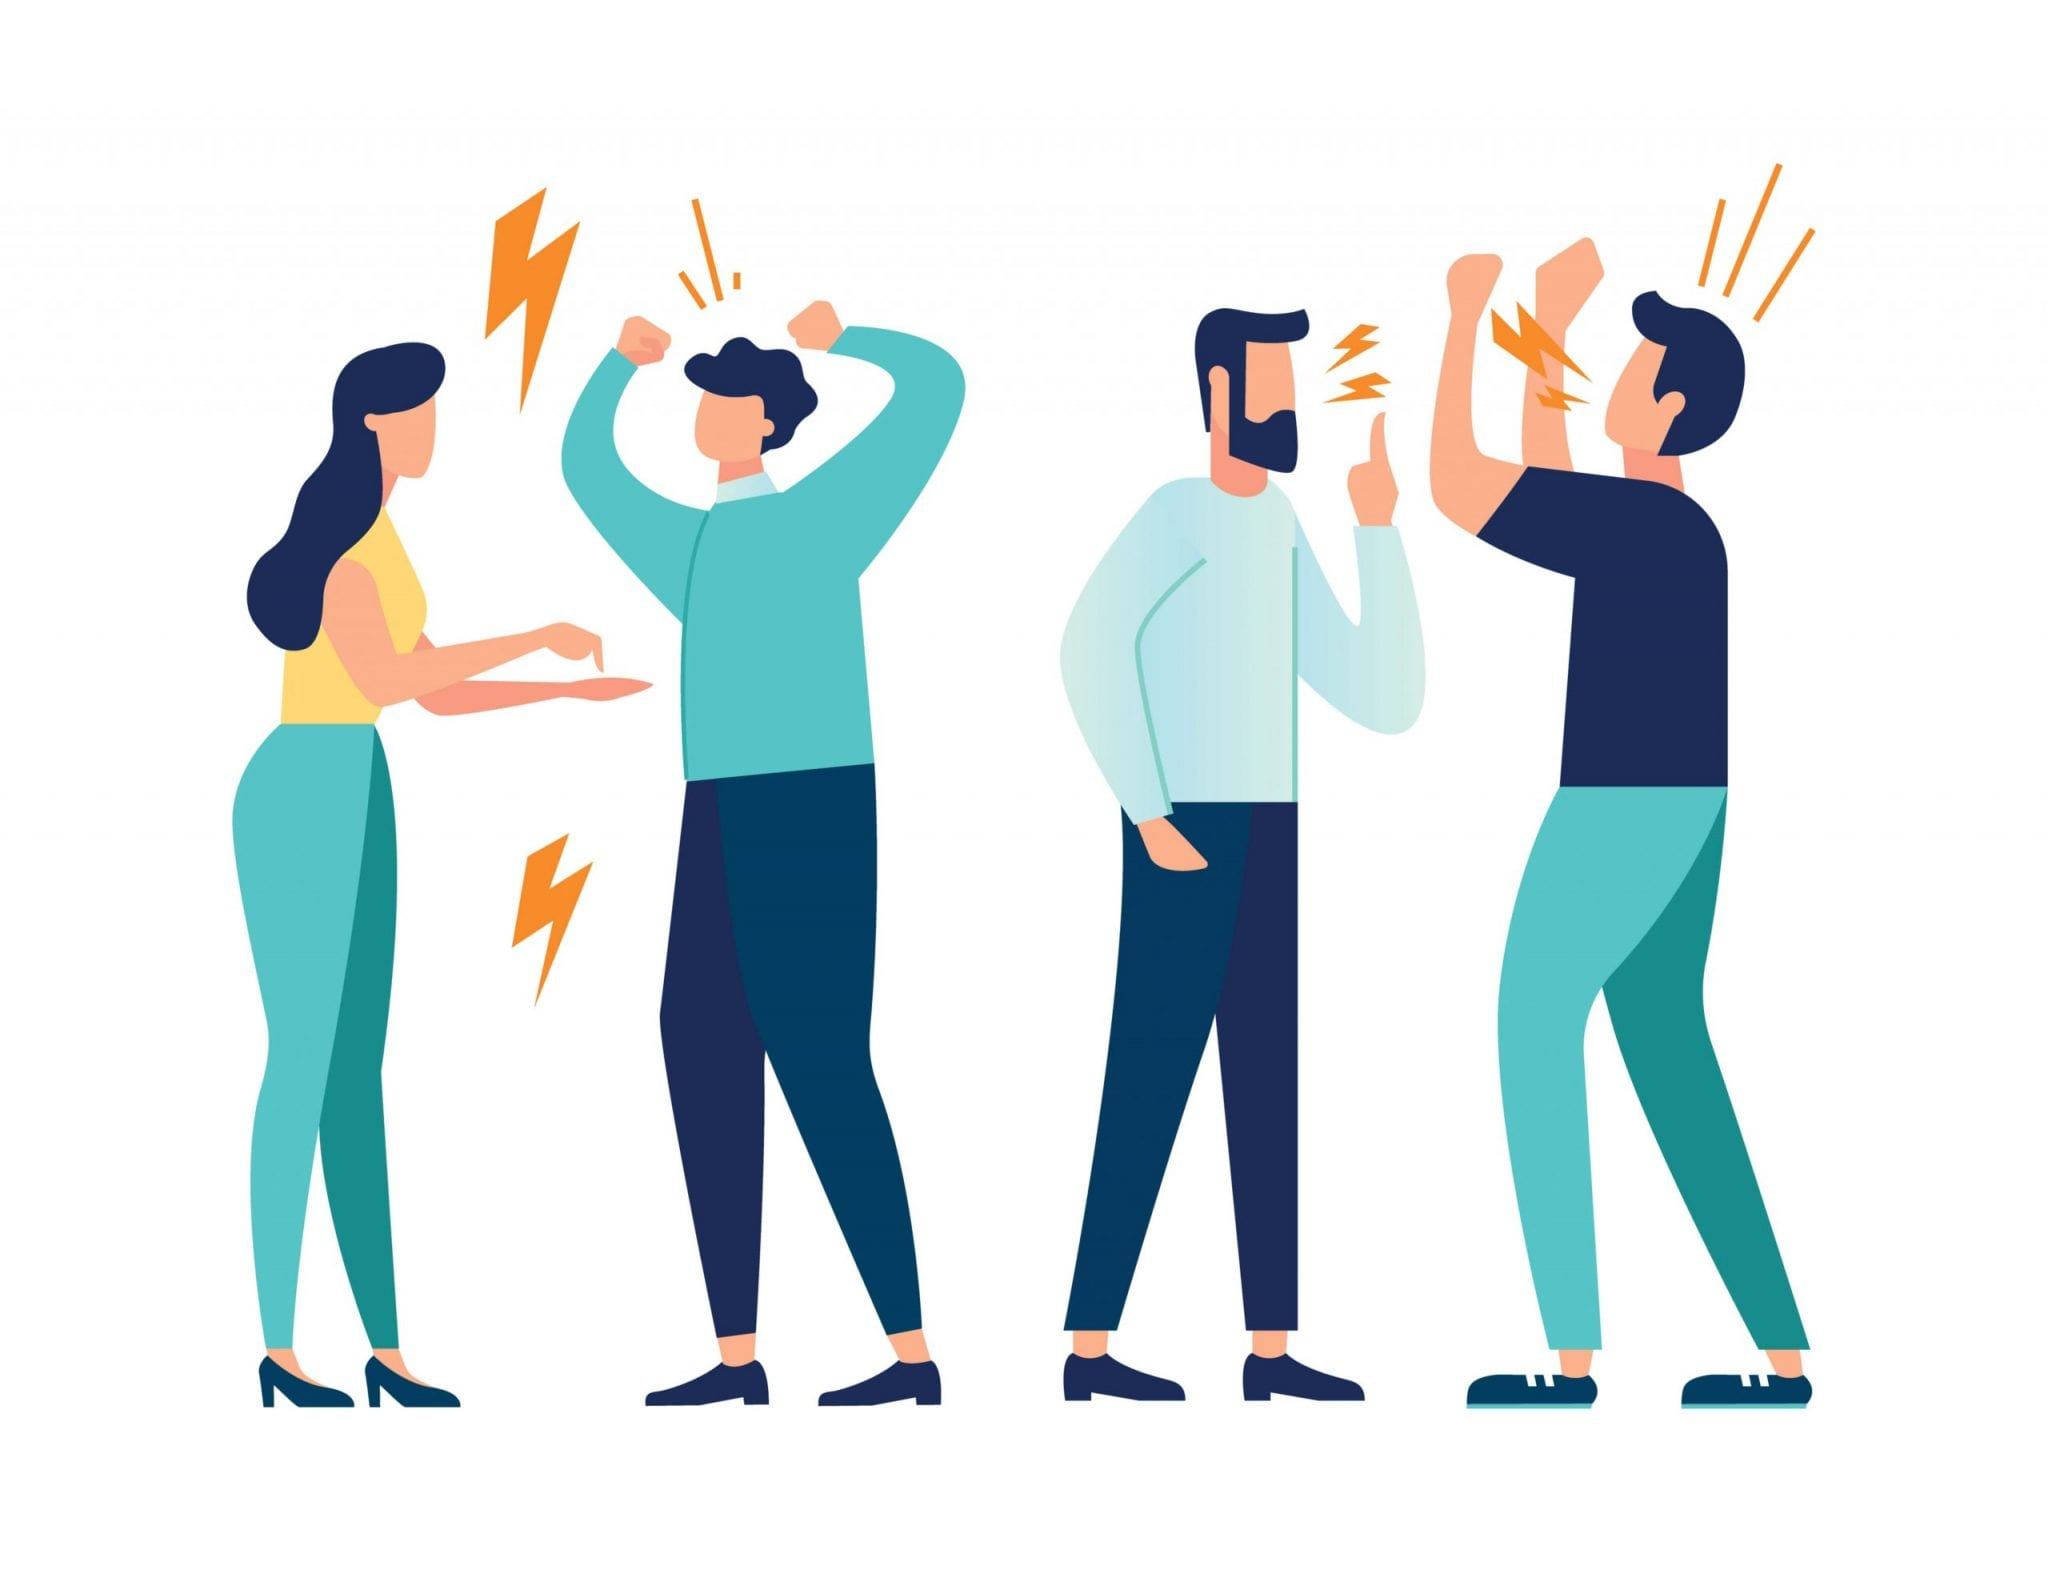 Vector Illustration Design Concept on White Background. A Set of a Couple of People Quarrel and Swear. Aggressive People Yell at Each Other. Design Graphics in a Flat Stylish Style.